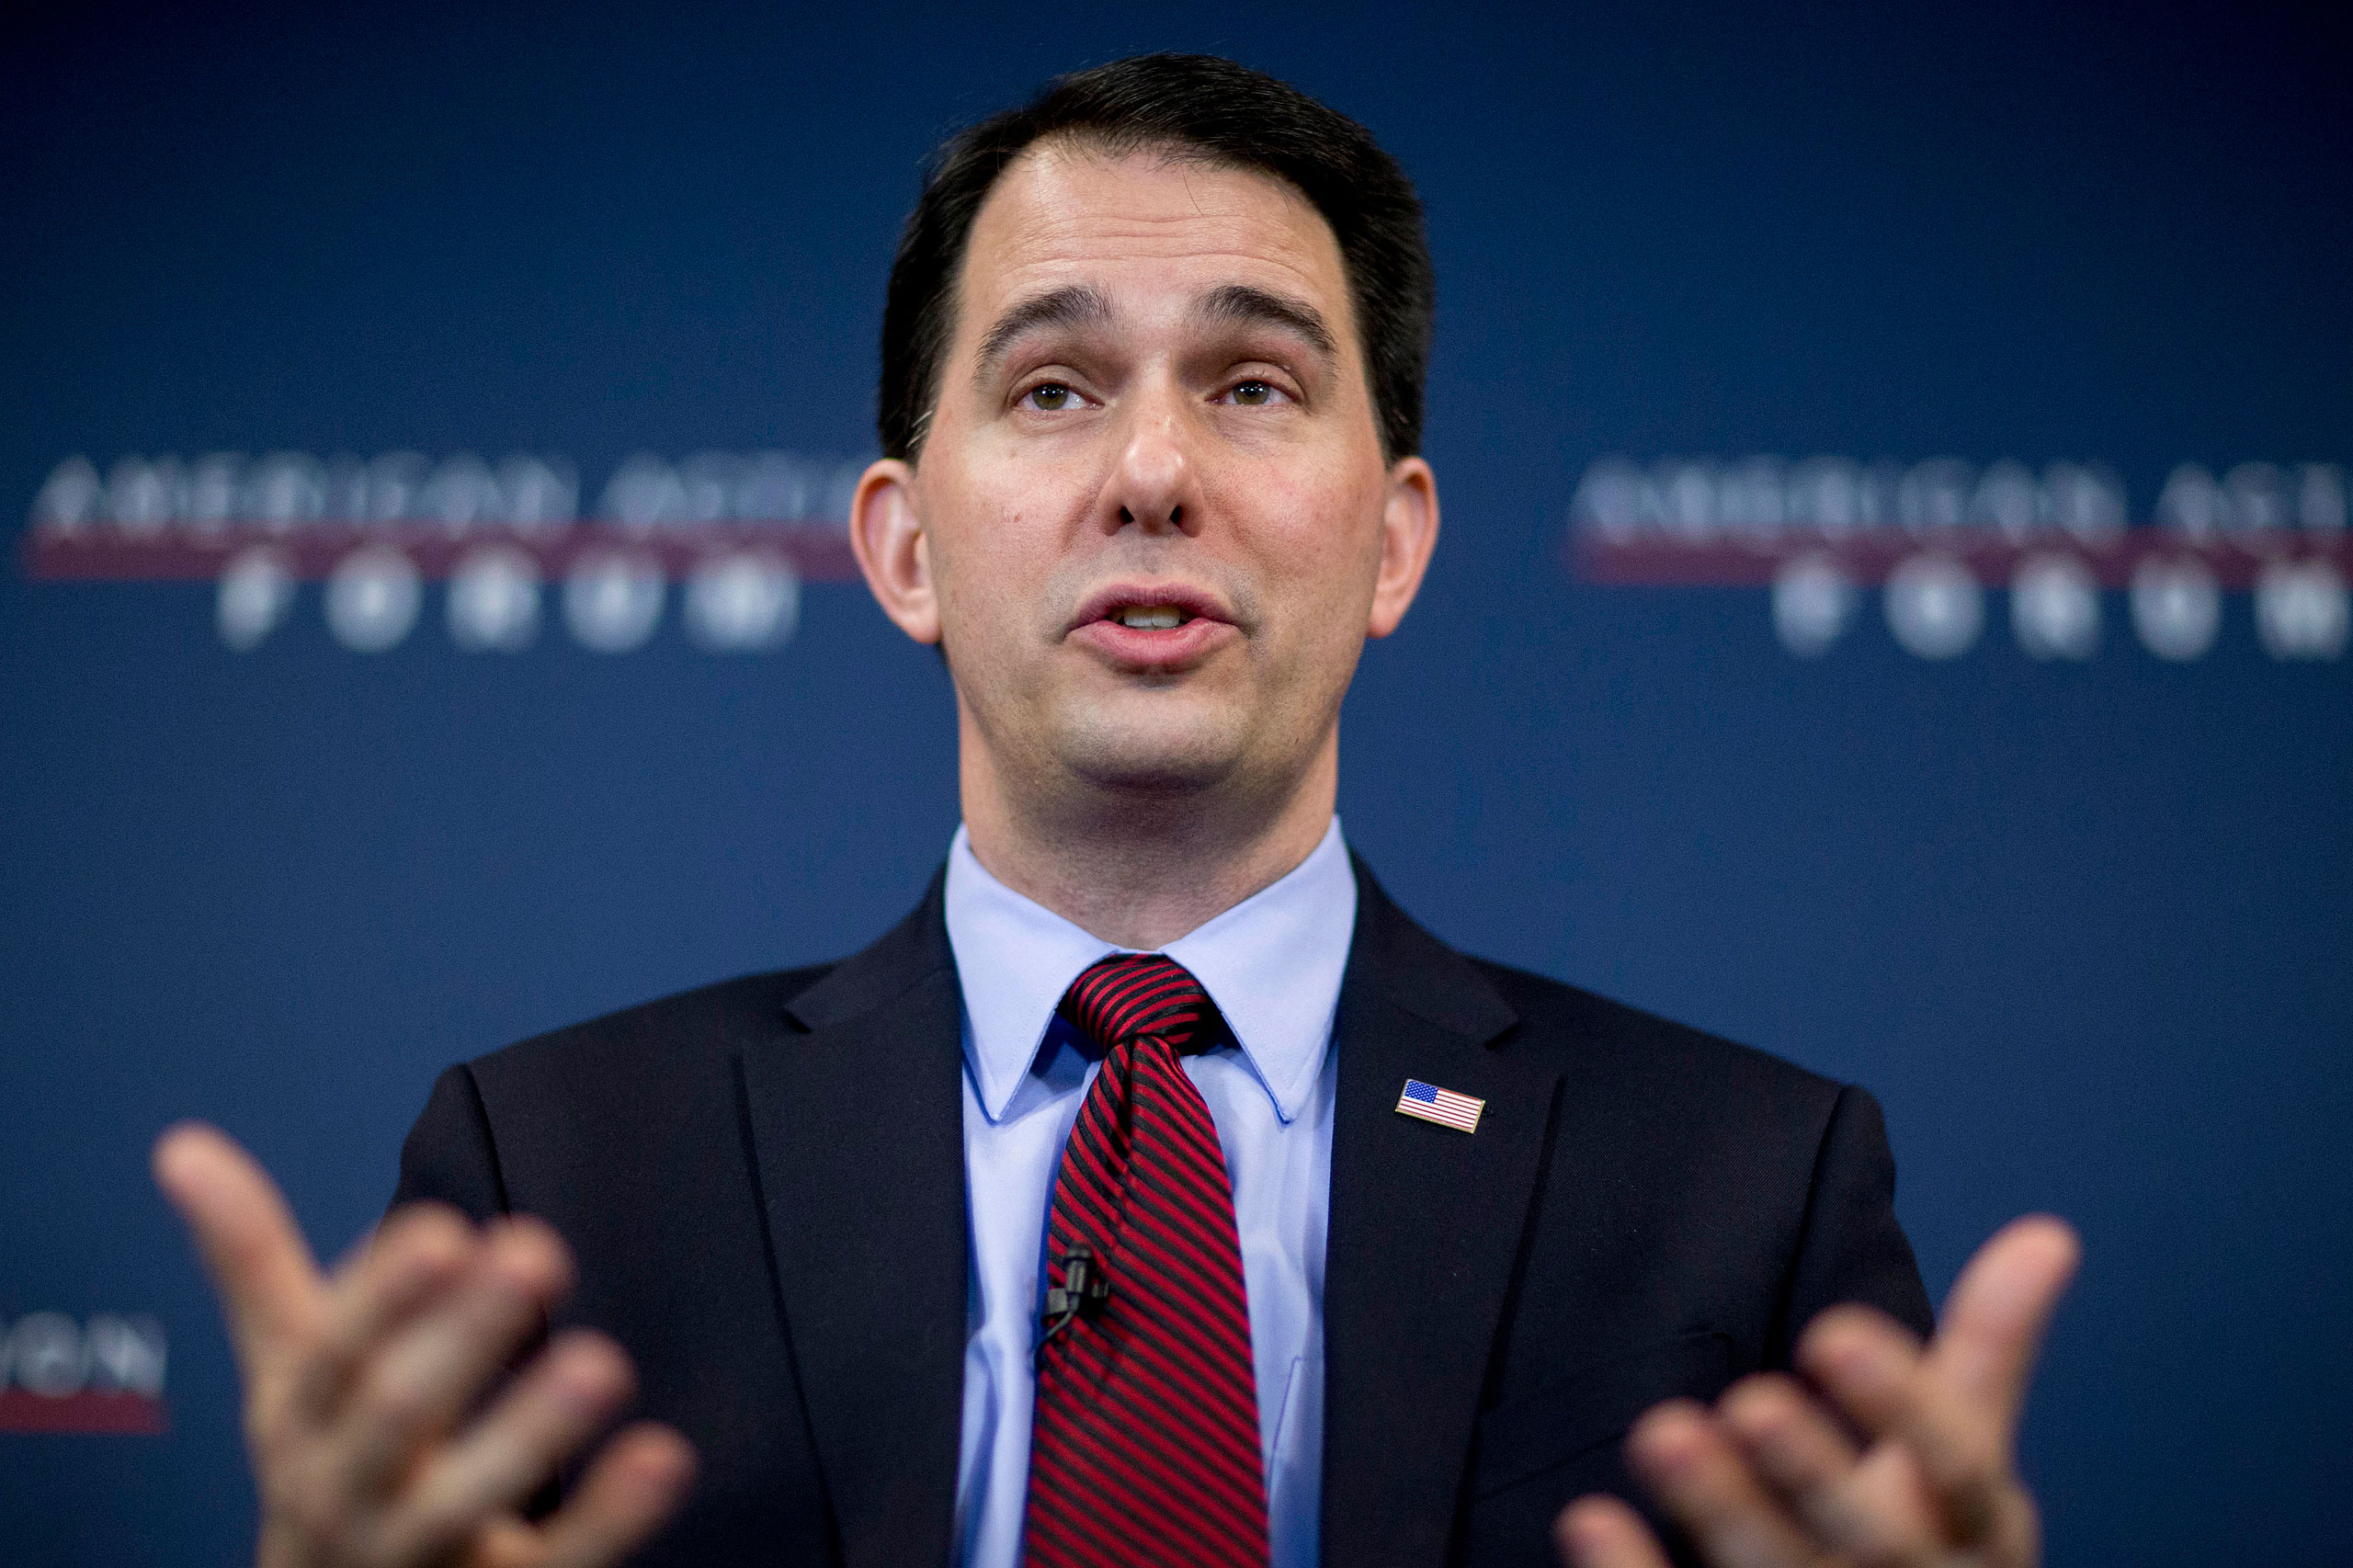 Wisconsin Governor Scott Walker Delivers Keynote At The American Action Forum